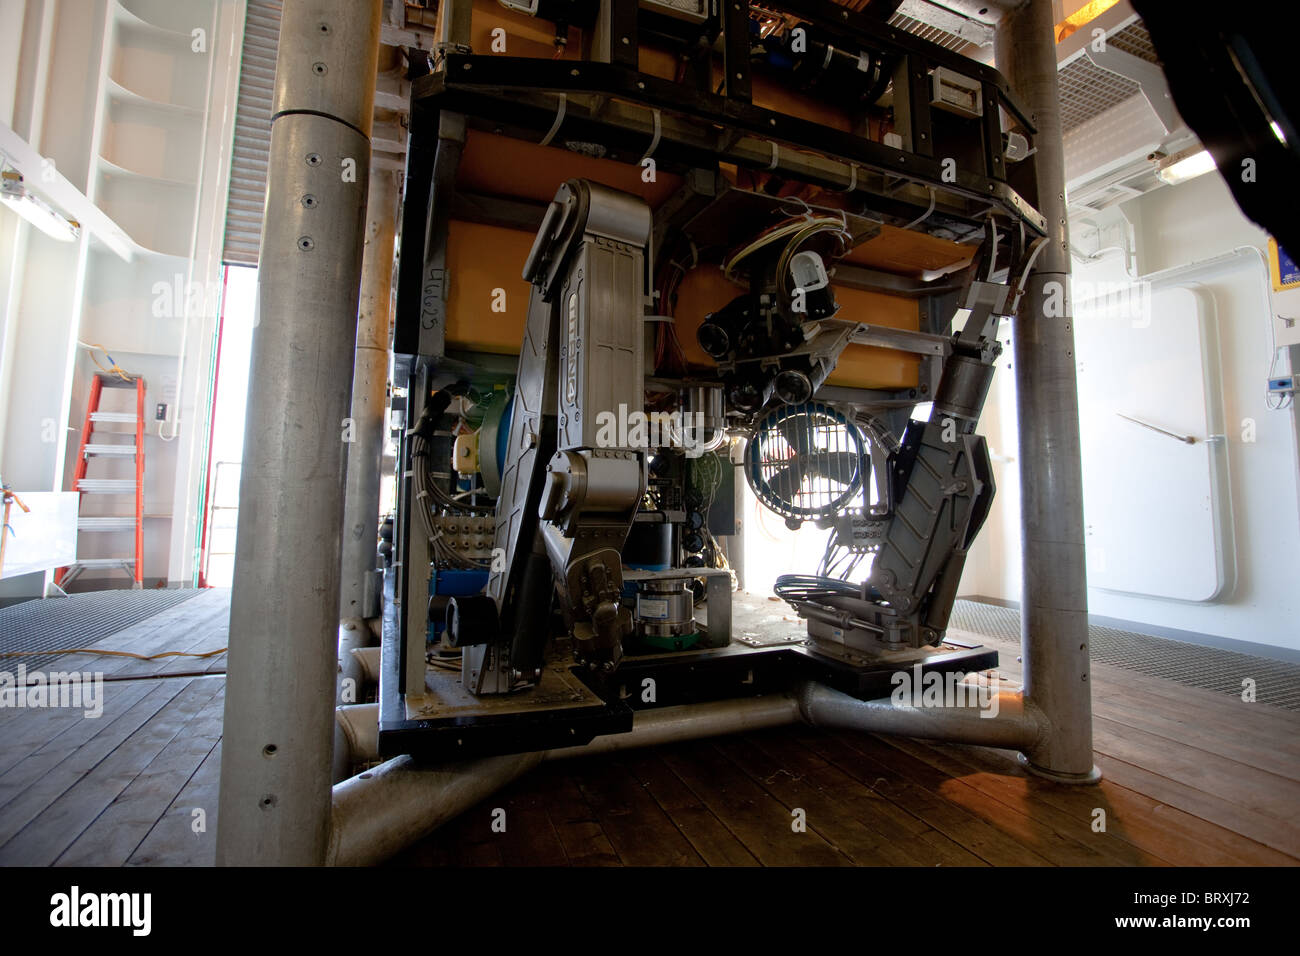 """Rov vessel with """"grab"""" implements stowed on board """"Sarah"""" oilfield intervention vessel Stock Photo"""